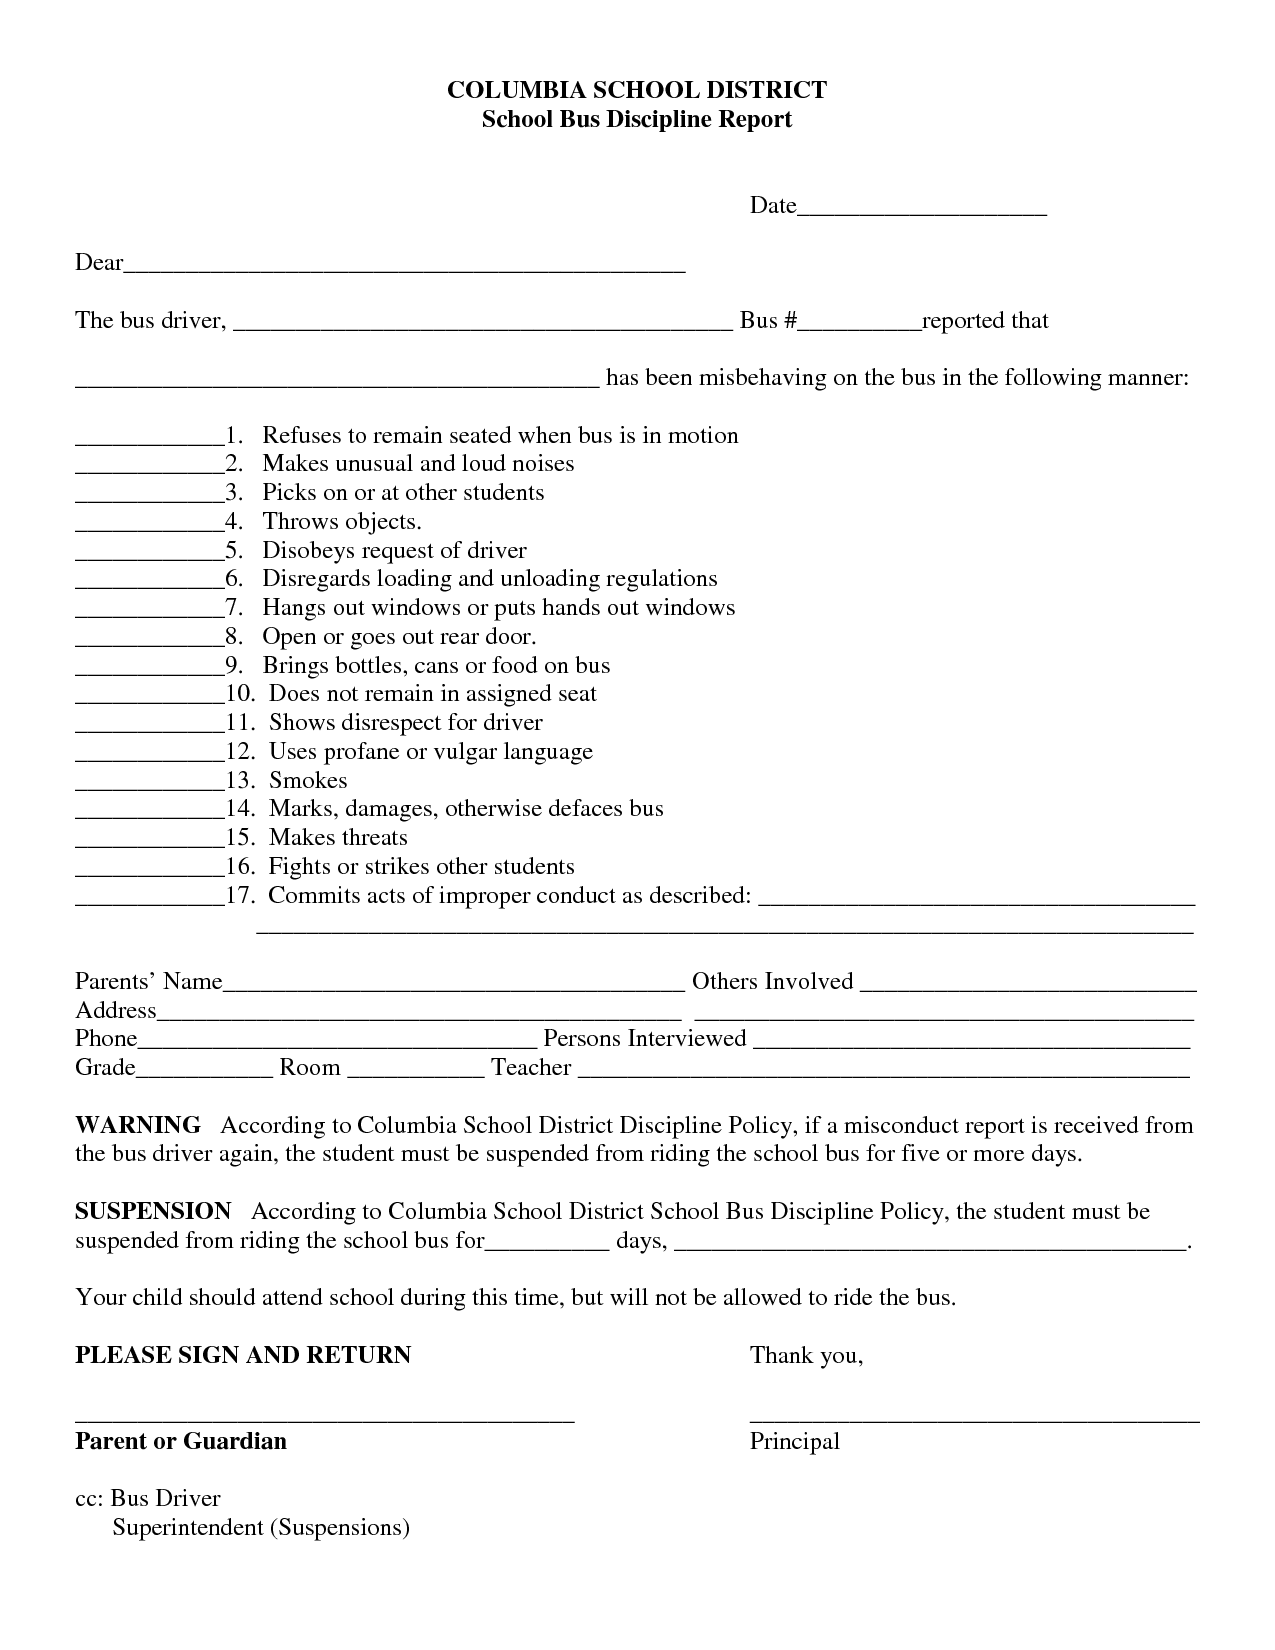 school bus misbehavior form